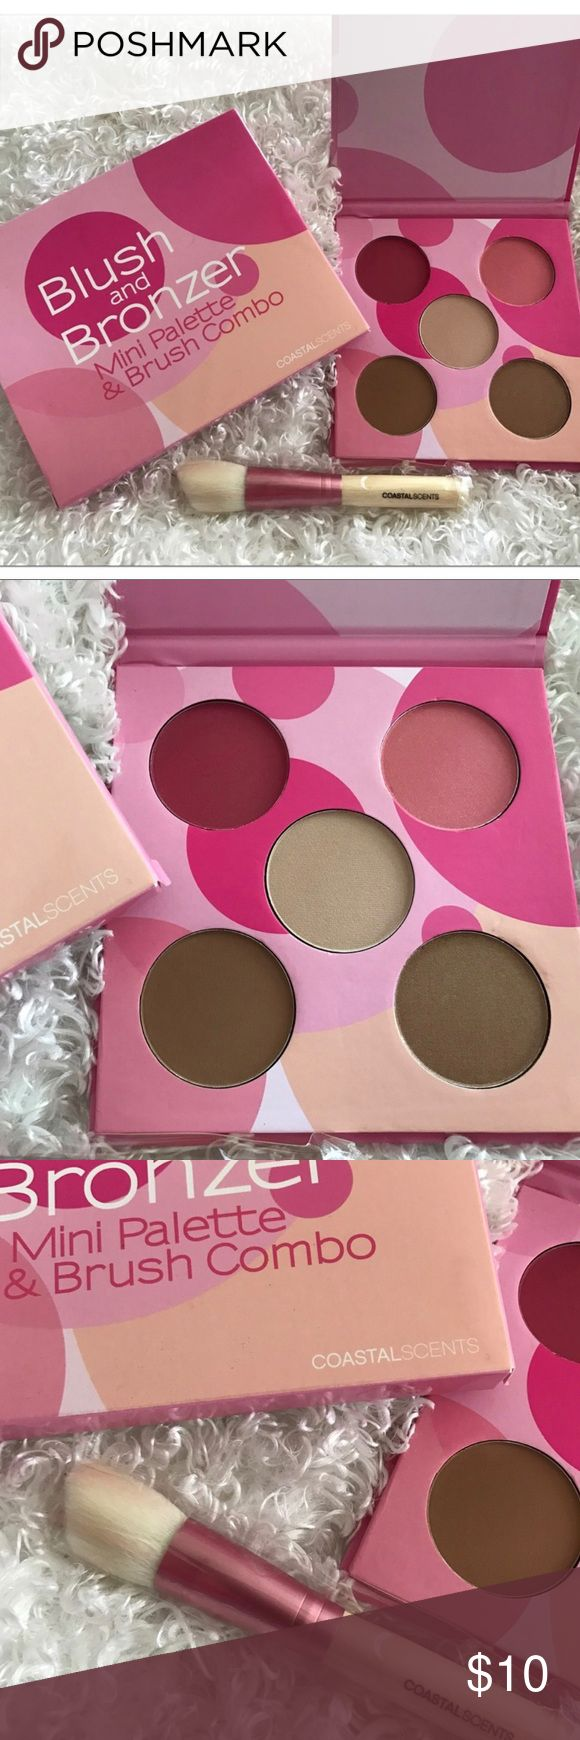 Coastal Scents Blush and Bronzer Palette Mini Palette & Brush Combo 🔸Brand new in box 🔸Bundle and save up to 25% off Coastal Scents Makeup Bronzer